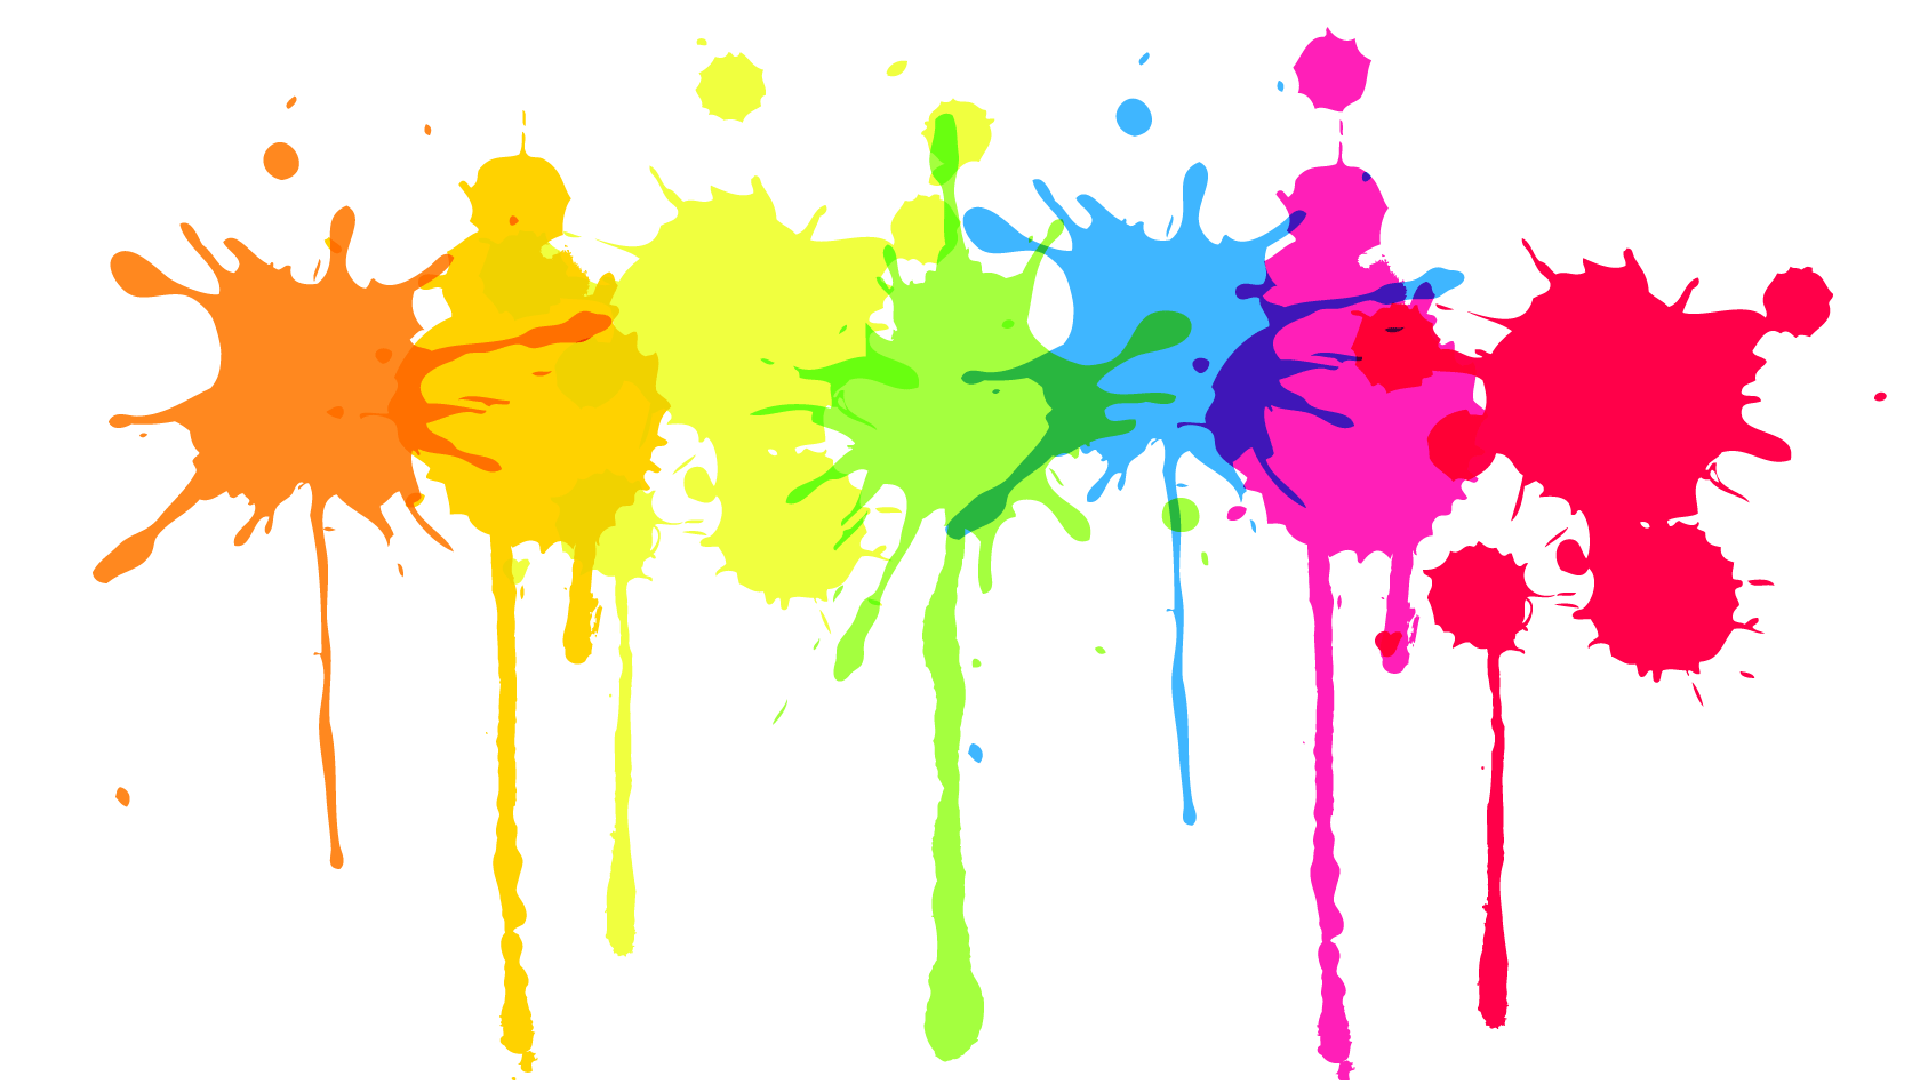 Graffiti clipart paint drip. Splatter panda free images